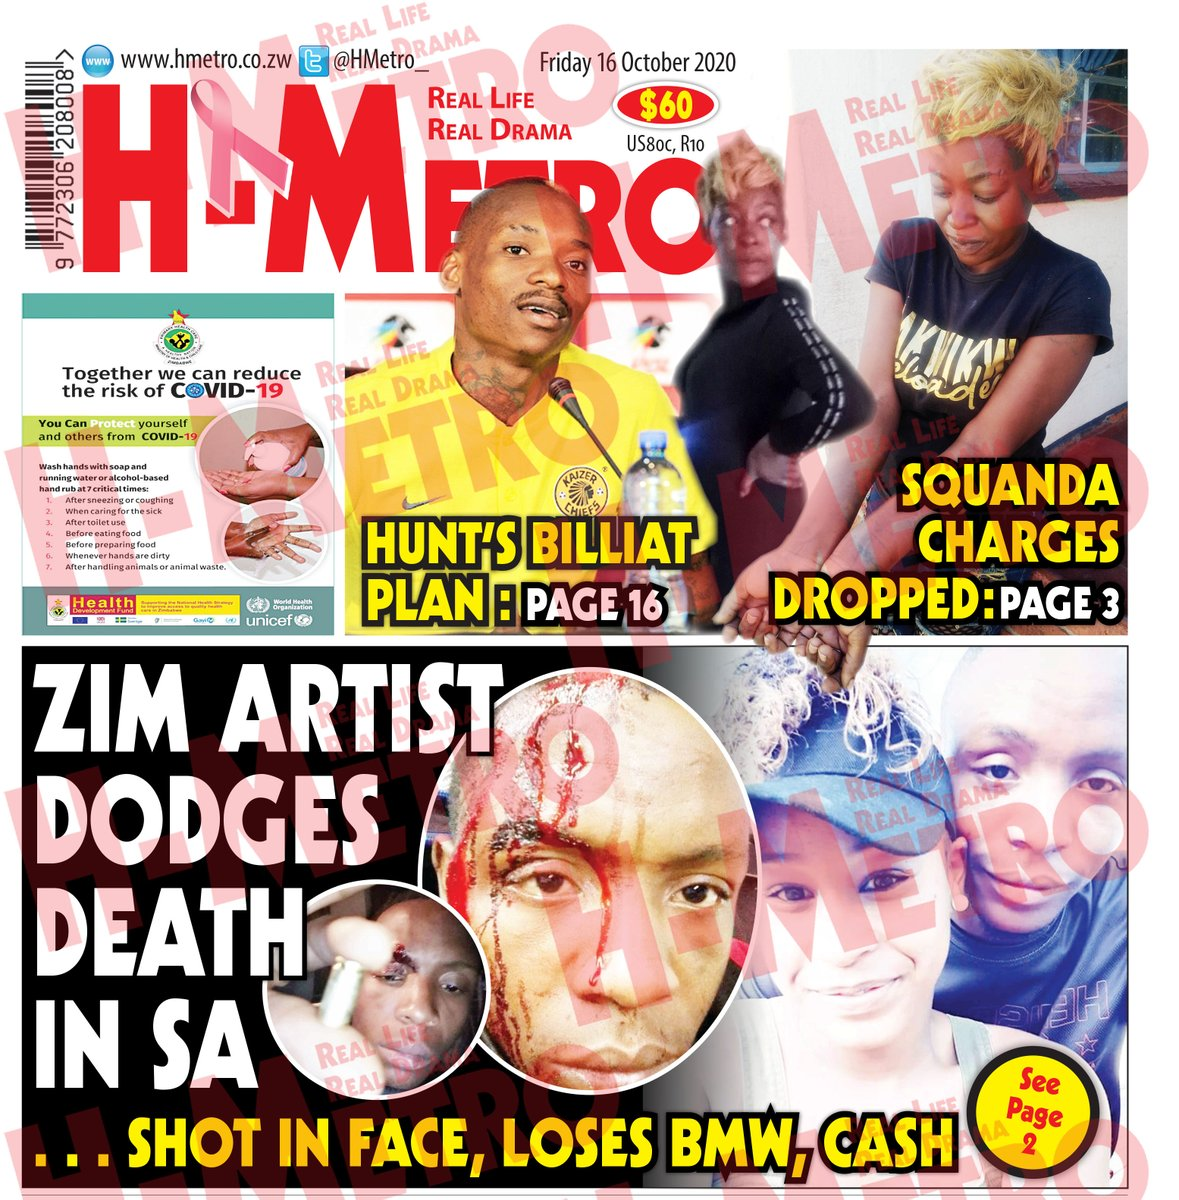 Todays @HMetro_ : 🔴ZIM ARTIST DODGES DEATH IN SA 🔴LADY SQUANDA CHARGES DROPPED 🔴IM SINGLE BY CHOICE: SHASHA; Get more @ hmetro.co.zw